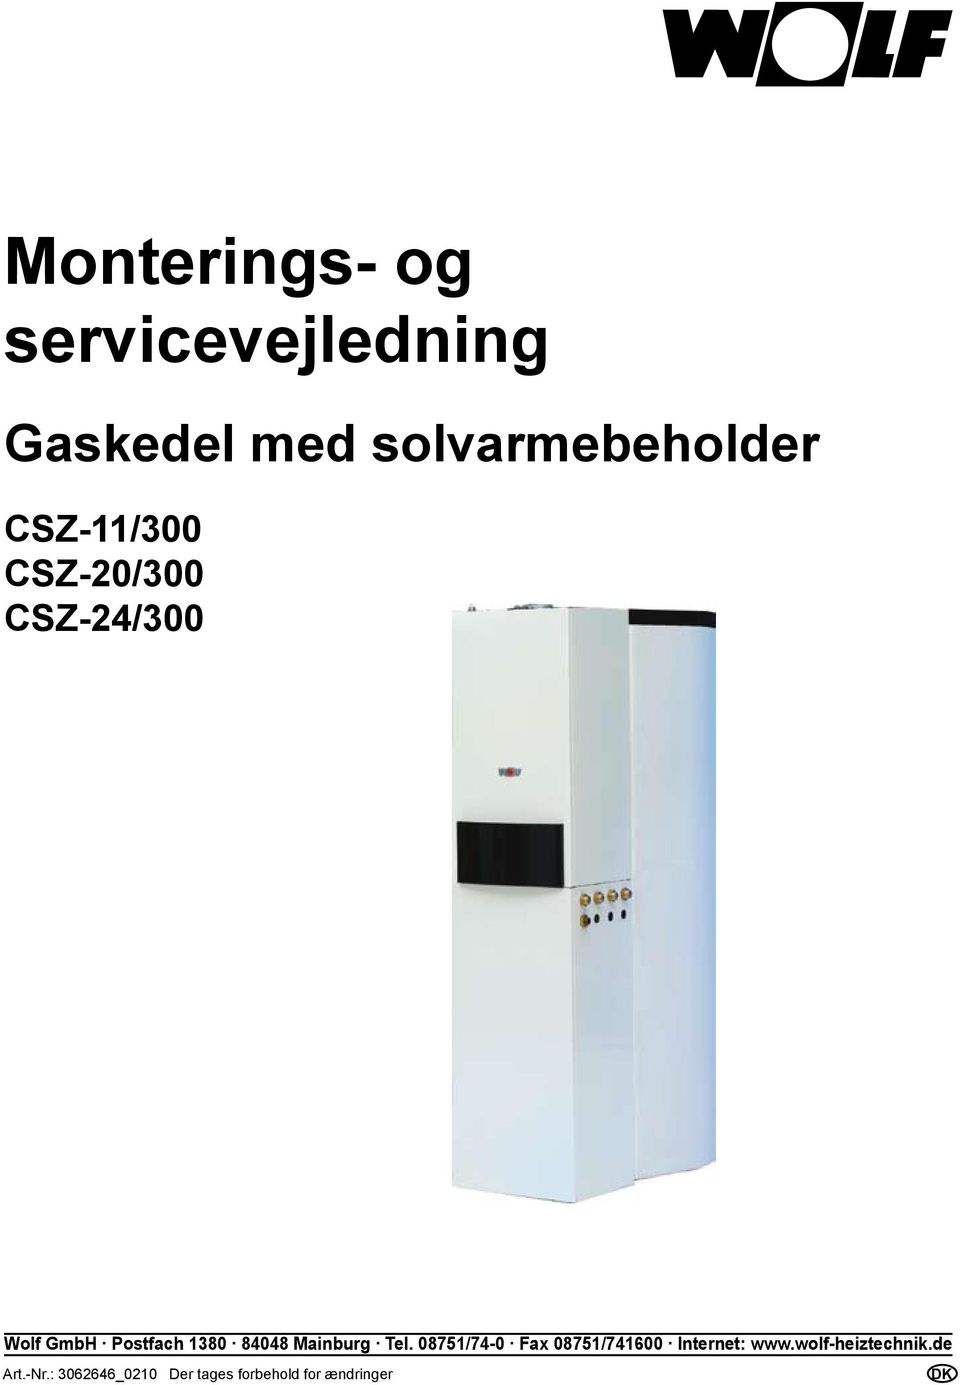 Mainburg Tel. 08751/74-0 Fax 08751/741600 Internet: www.